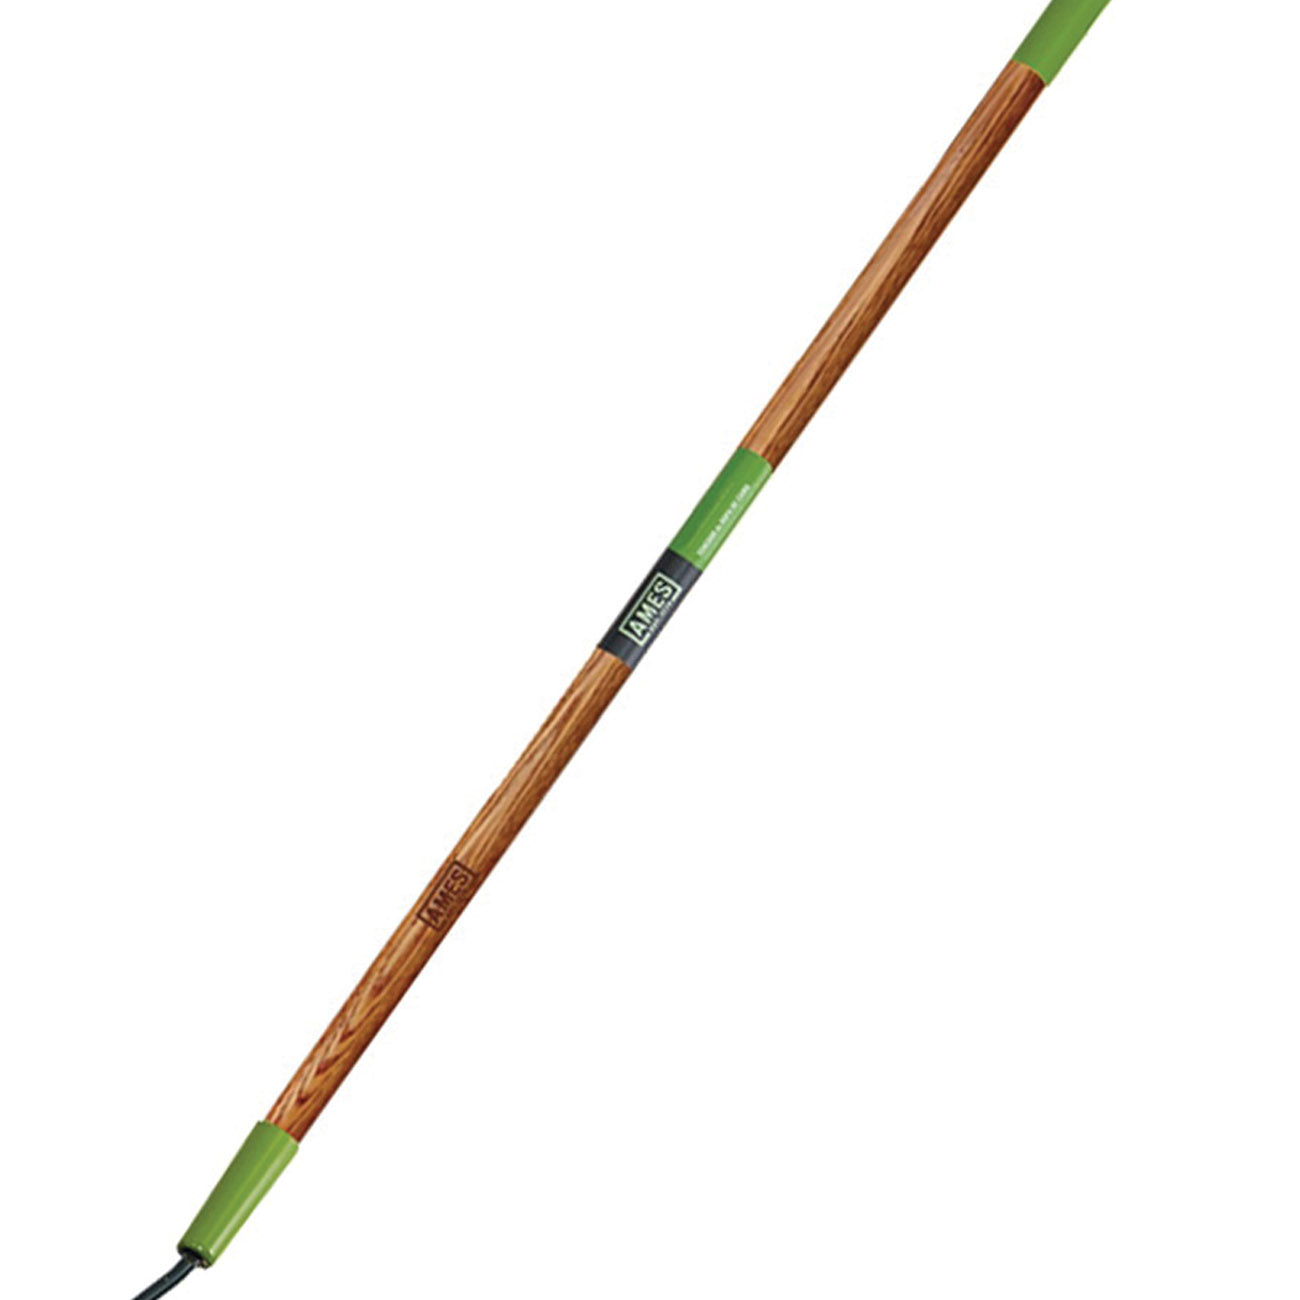 Picture of AMES 2825700 Welded Garden Hoe, 6-1/4 in W Blade, 5-1/4 in L Blade, Steel Blade, Hardwood Handle, 57-1/4 in OAL